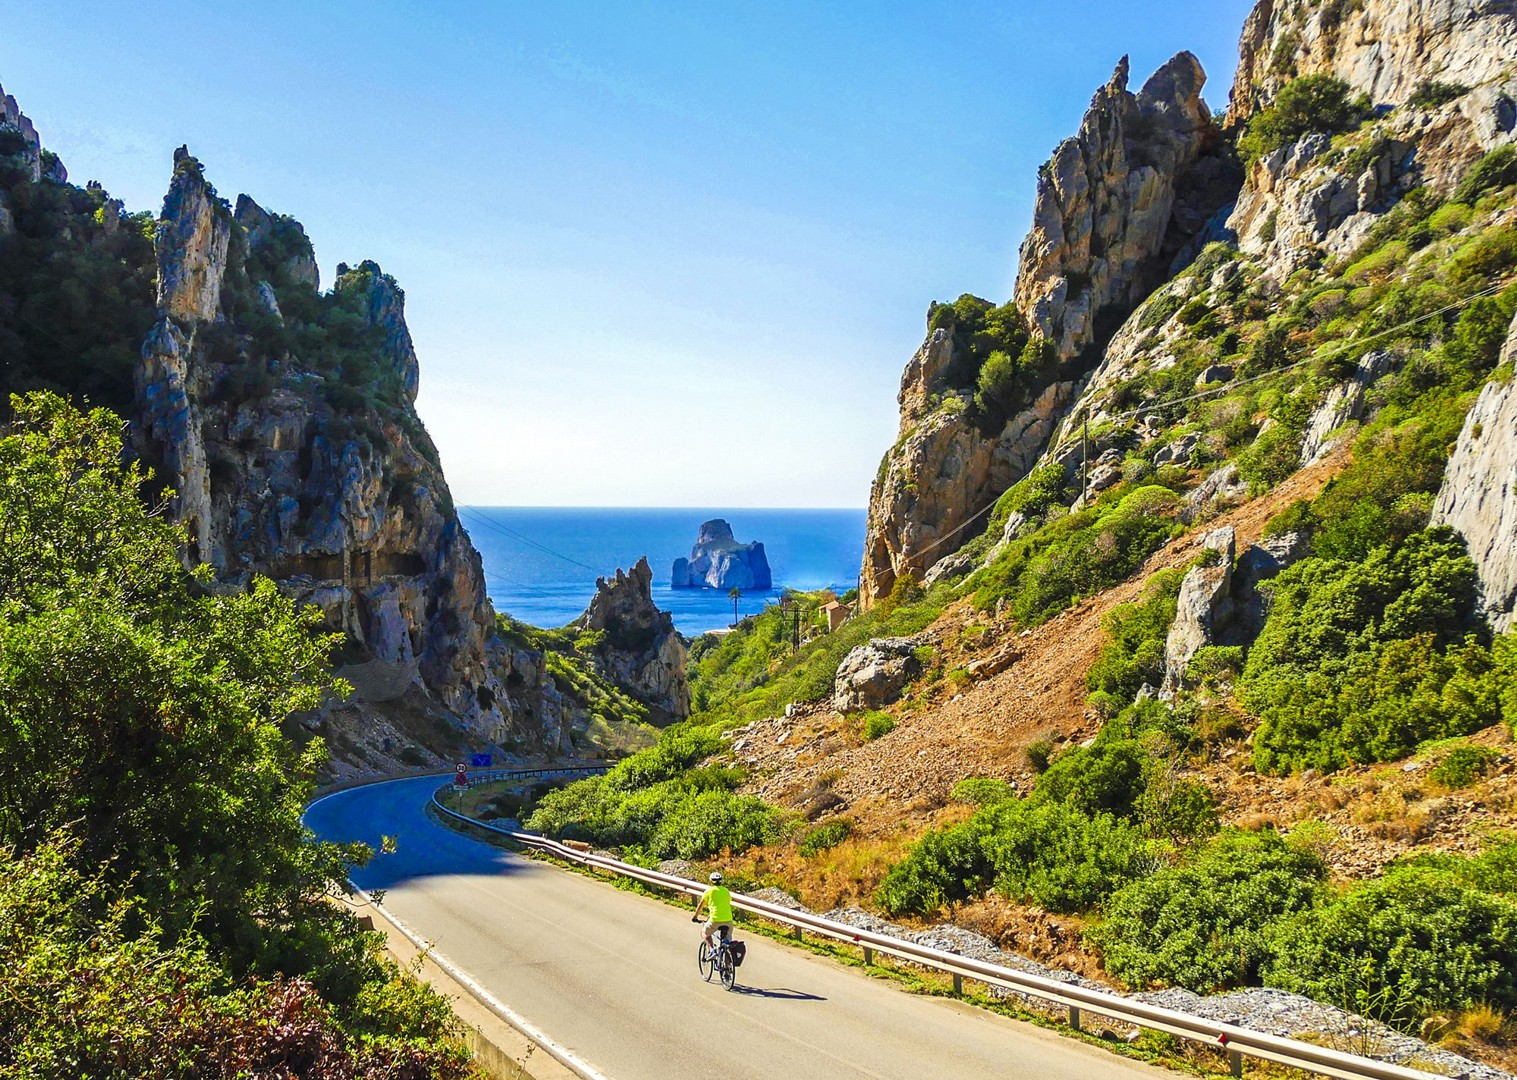 descending-towards-the-pan-di-zucchero-sardinia-cycling-holidays.jpg - Italy - Sardinia - Island Flavours - Self-Guided Leisure Cycling Holiday - Italia Leisure and Family Cycling